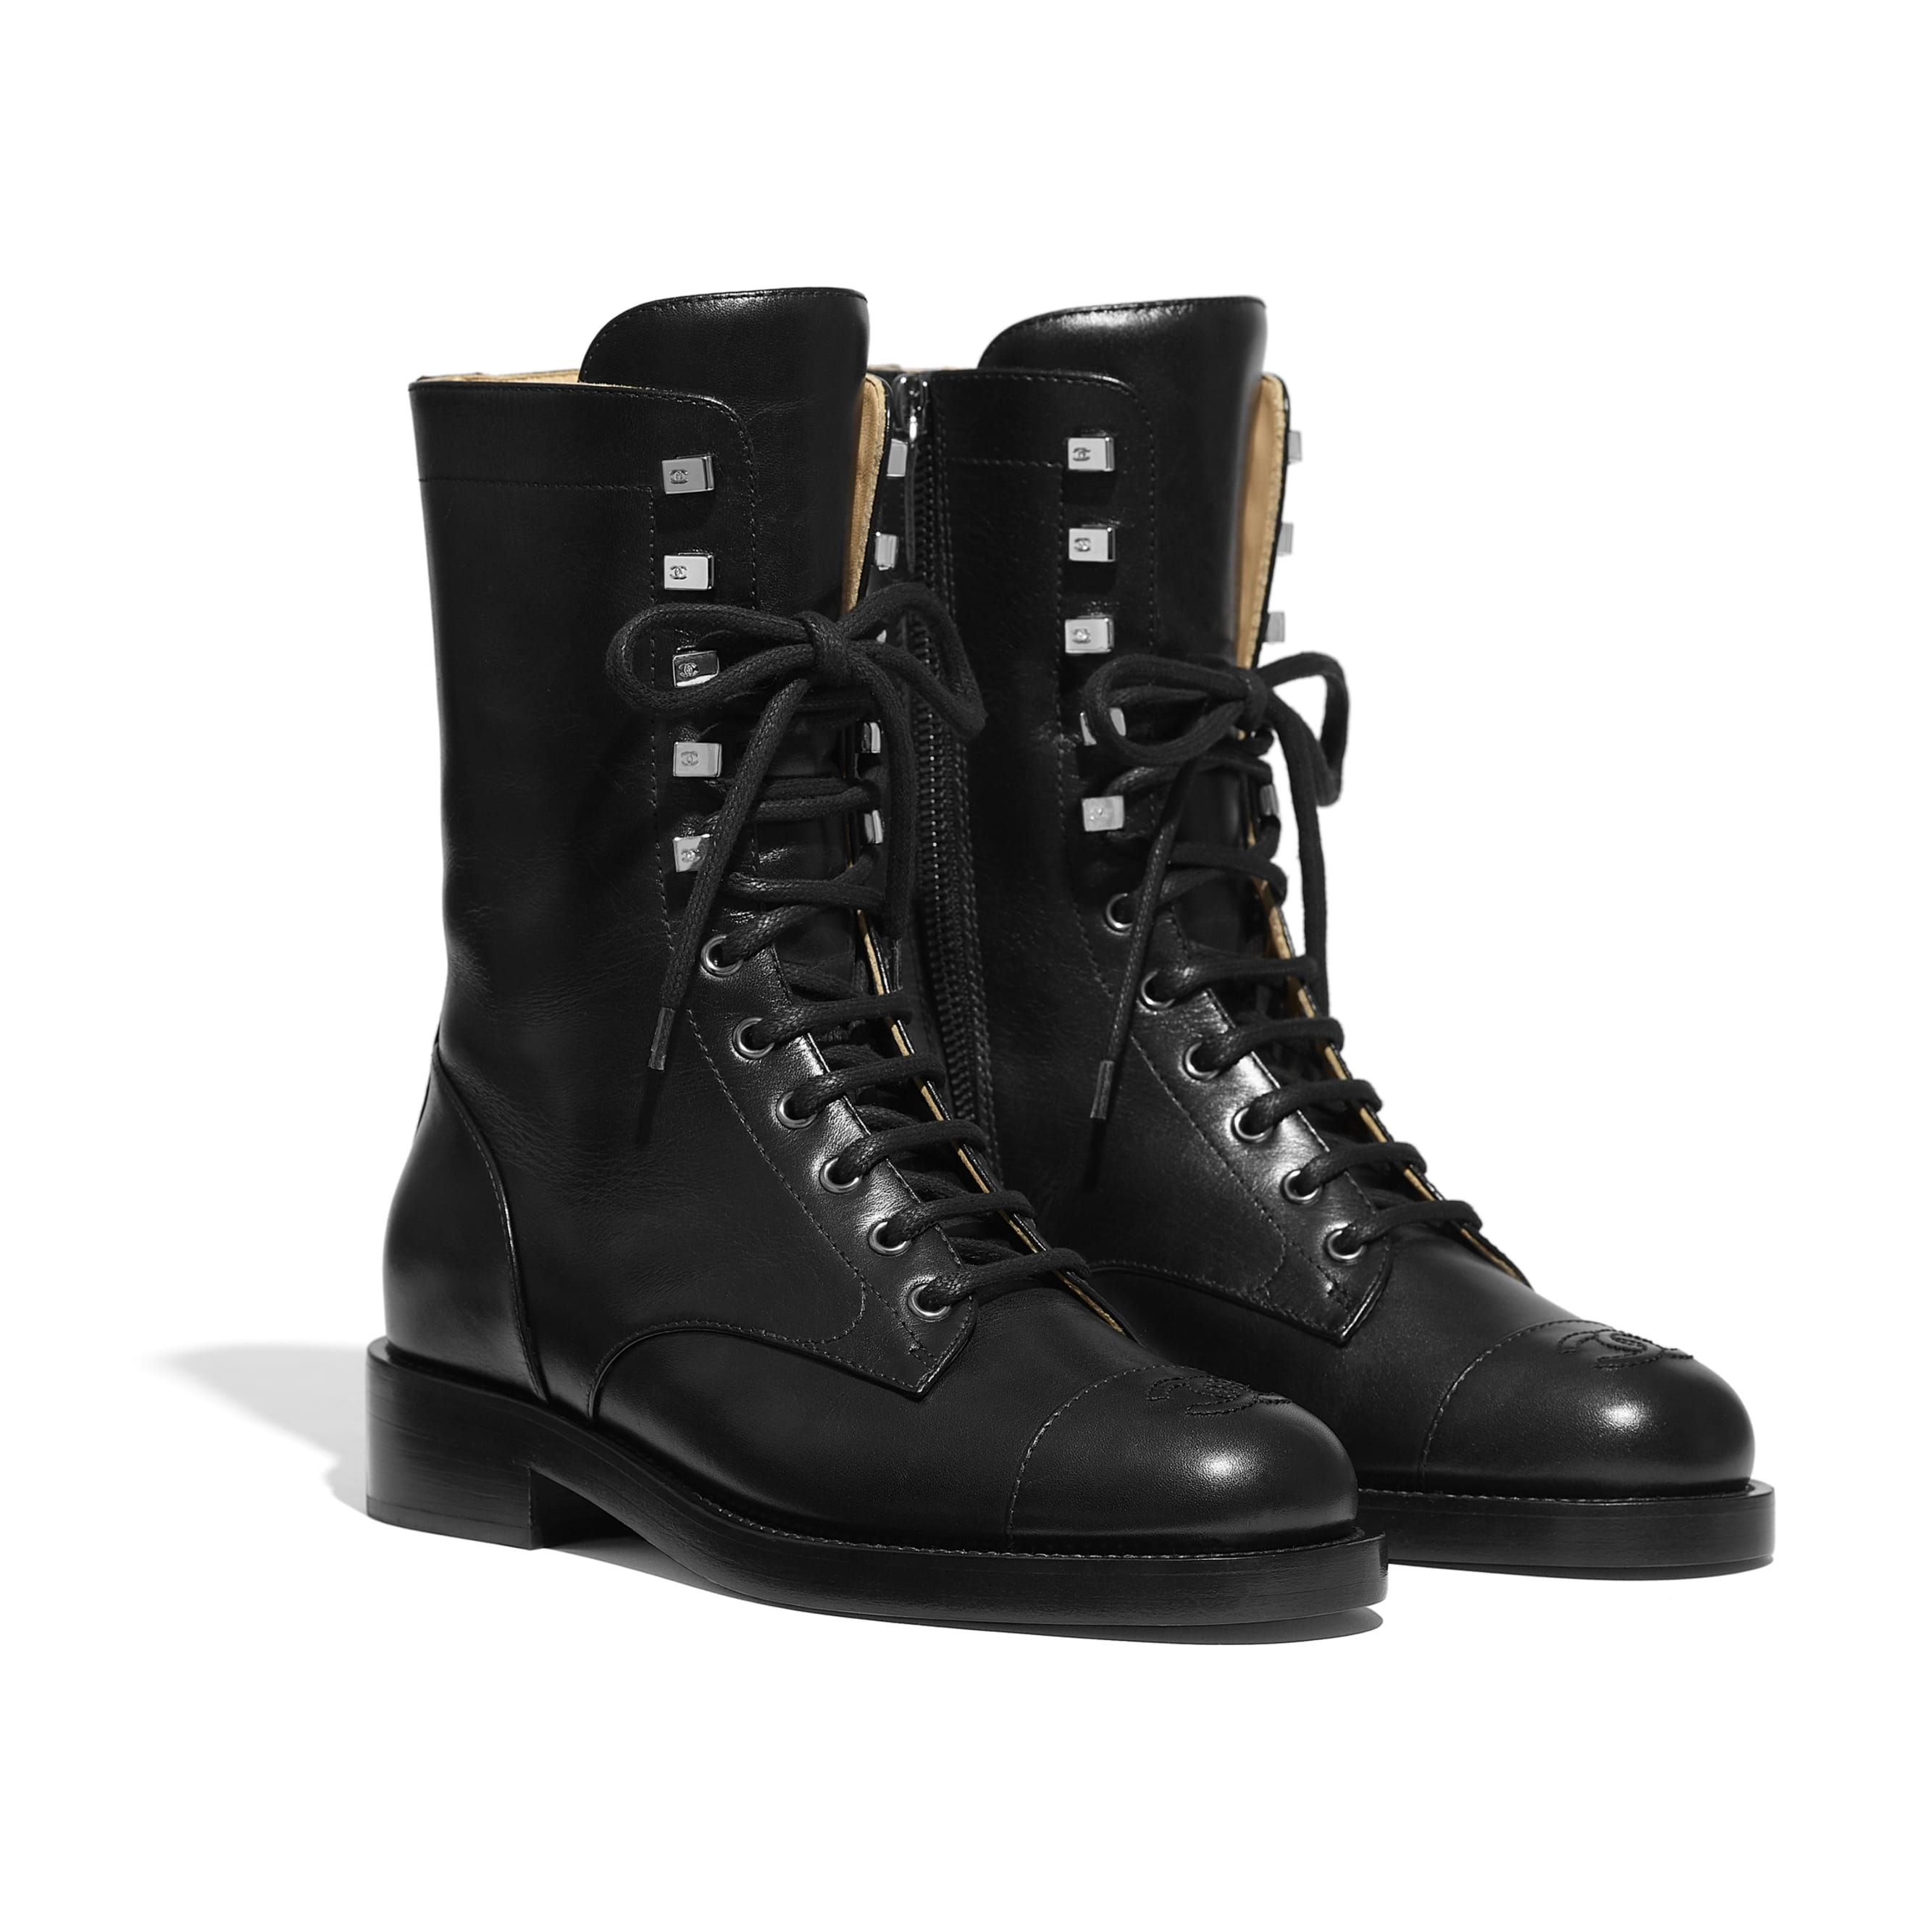 Chanel boots, Boots, Chanel combat boots